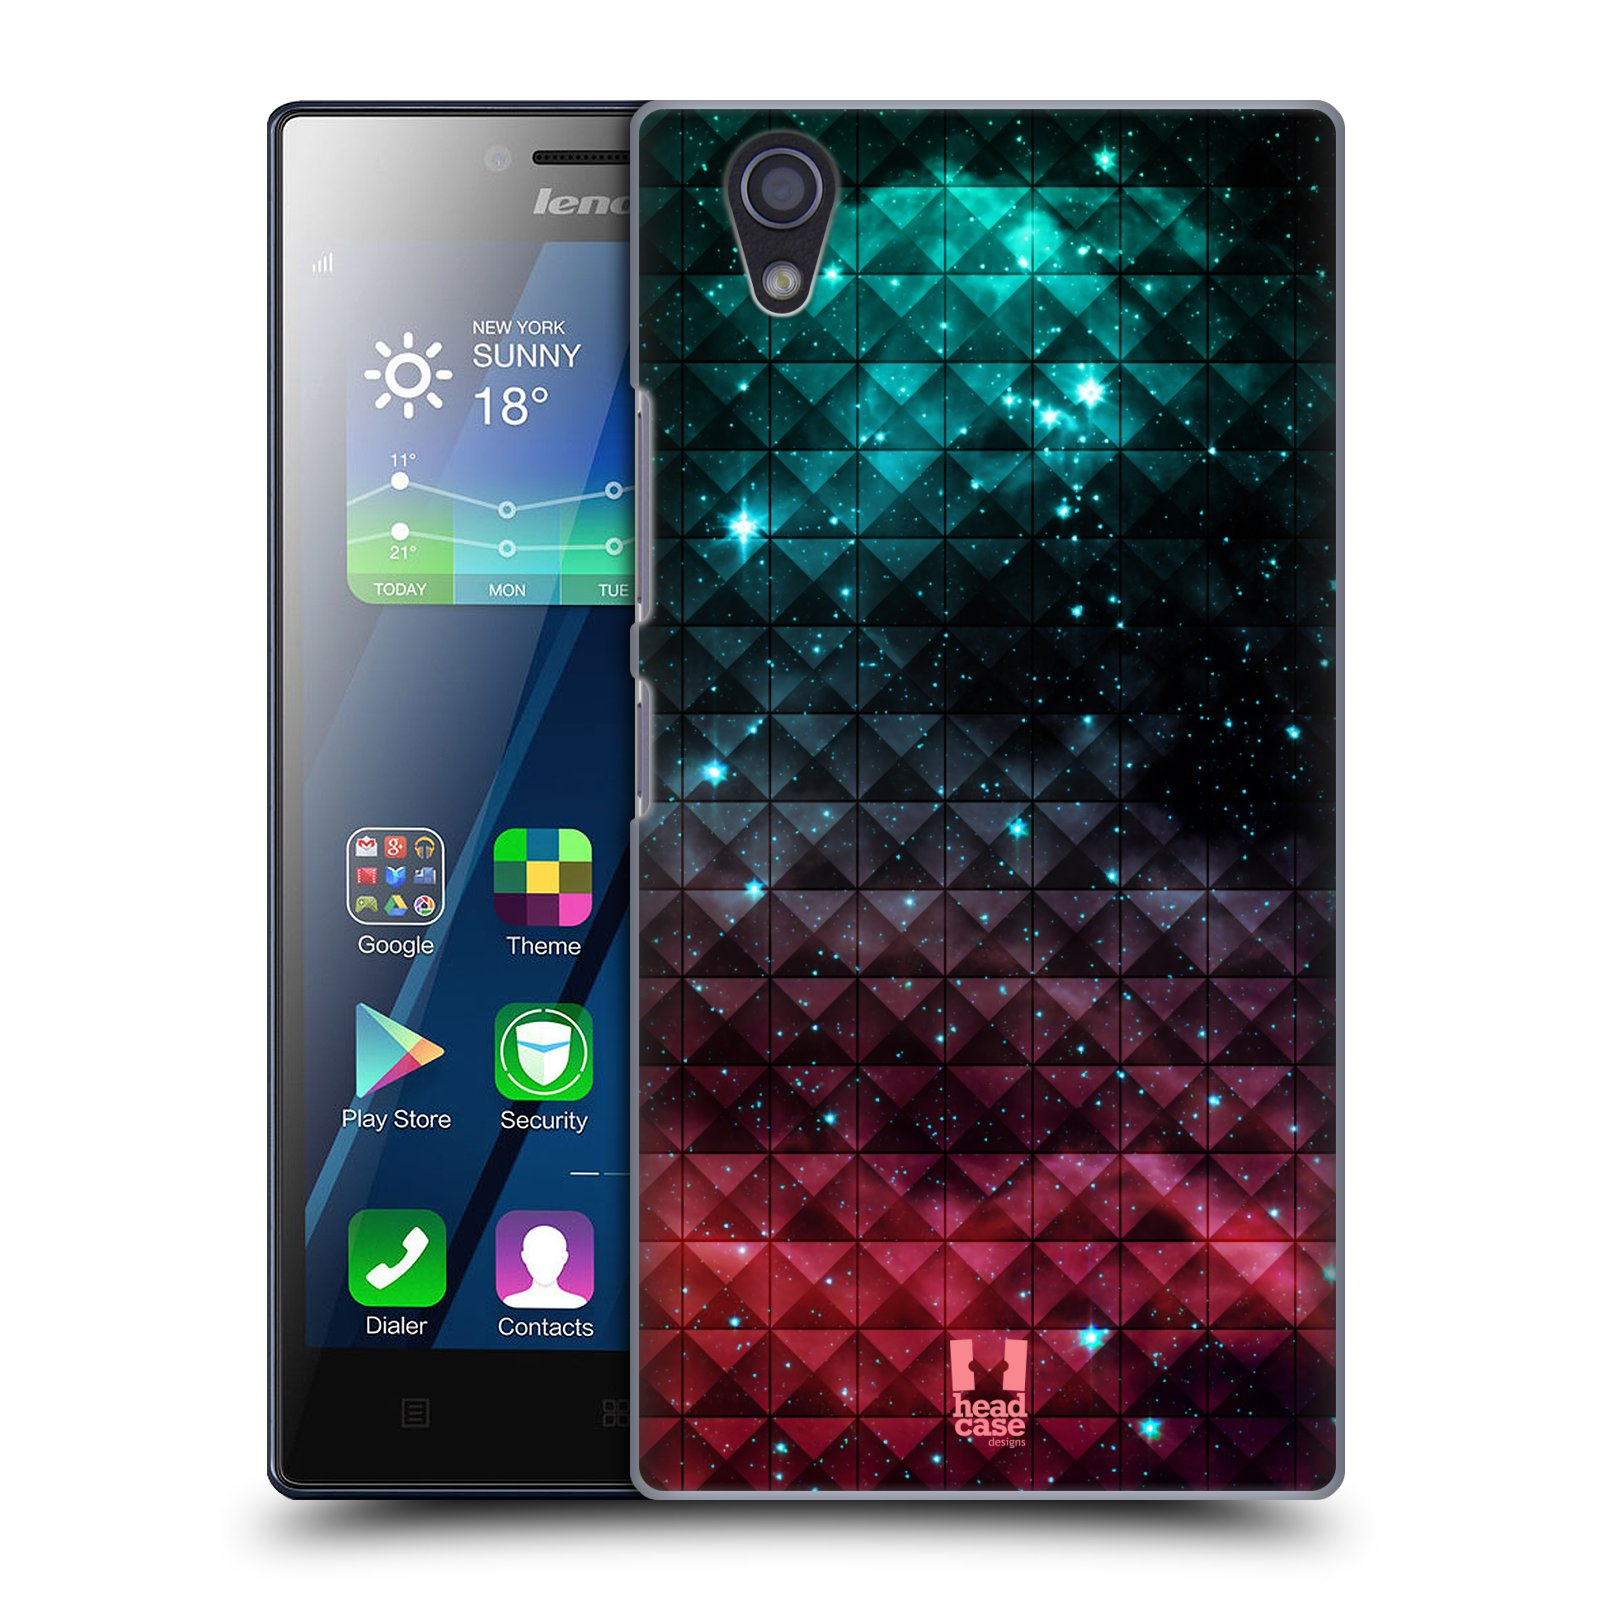 HEAD CASE DESIGNS PRINTED STUDDED OMBRE HARD BACK CASE FOR LENOVO P70